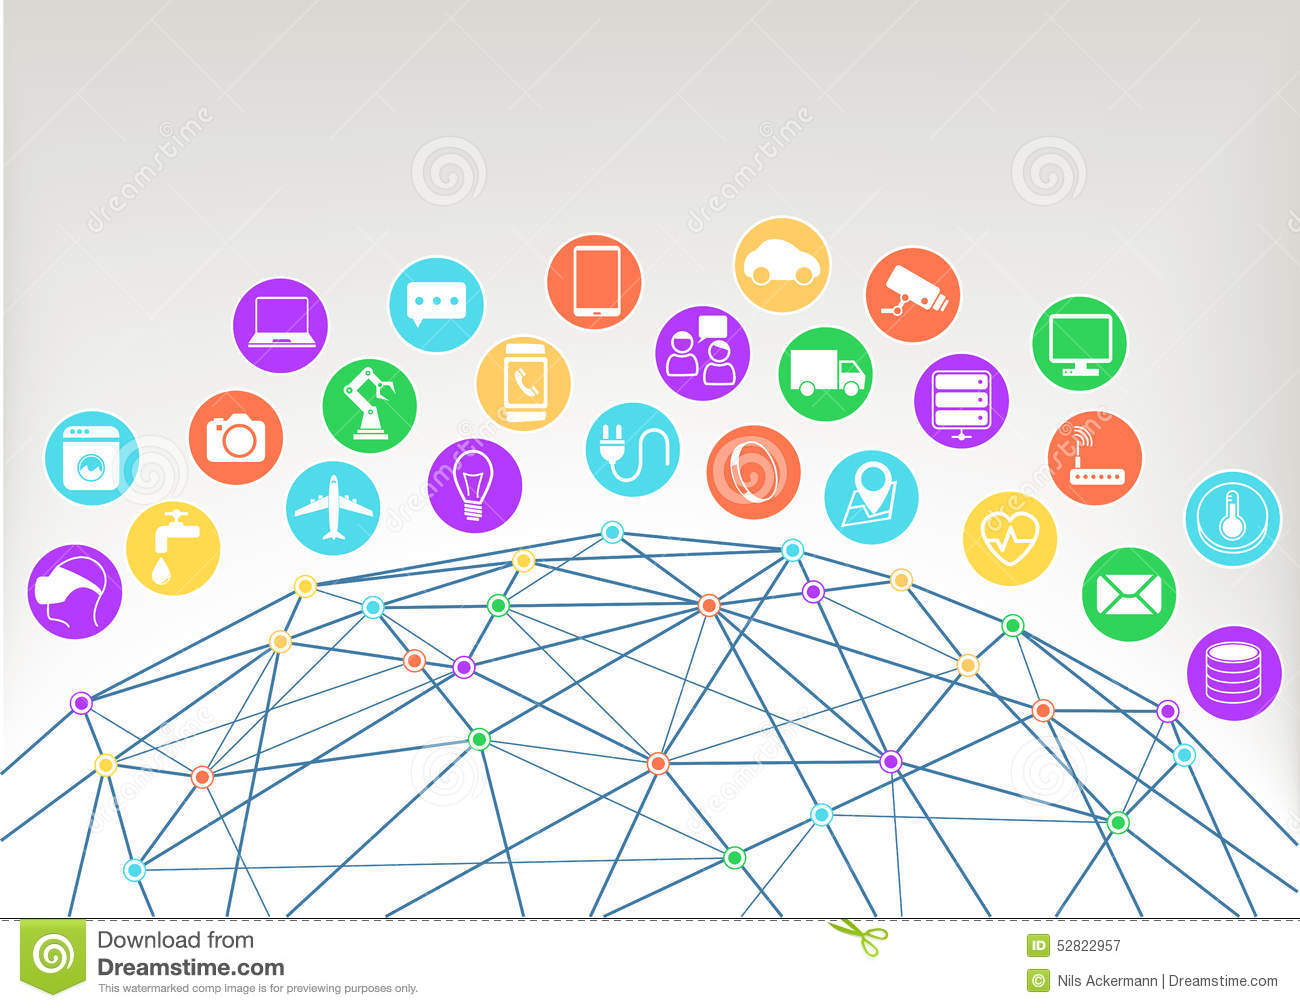 Simple internet of things icon set symbols for iot with flat design internet of things iot illustration backgroundicons symbols for various connected devices biocorpaavc Images